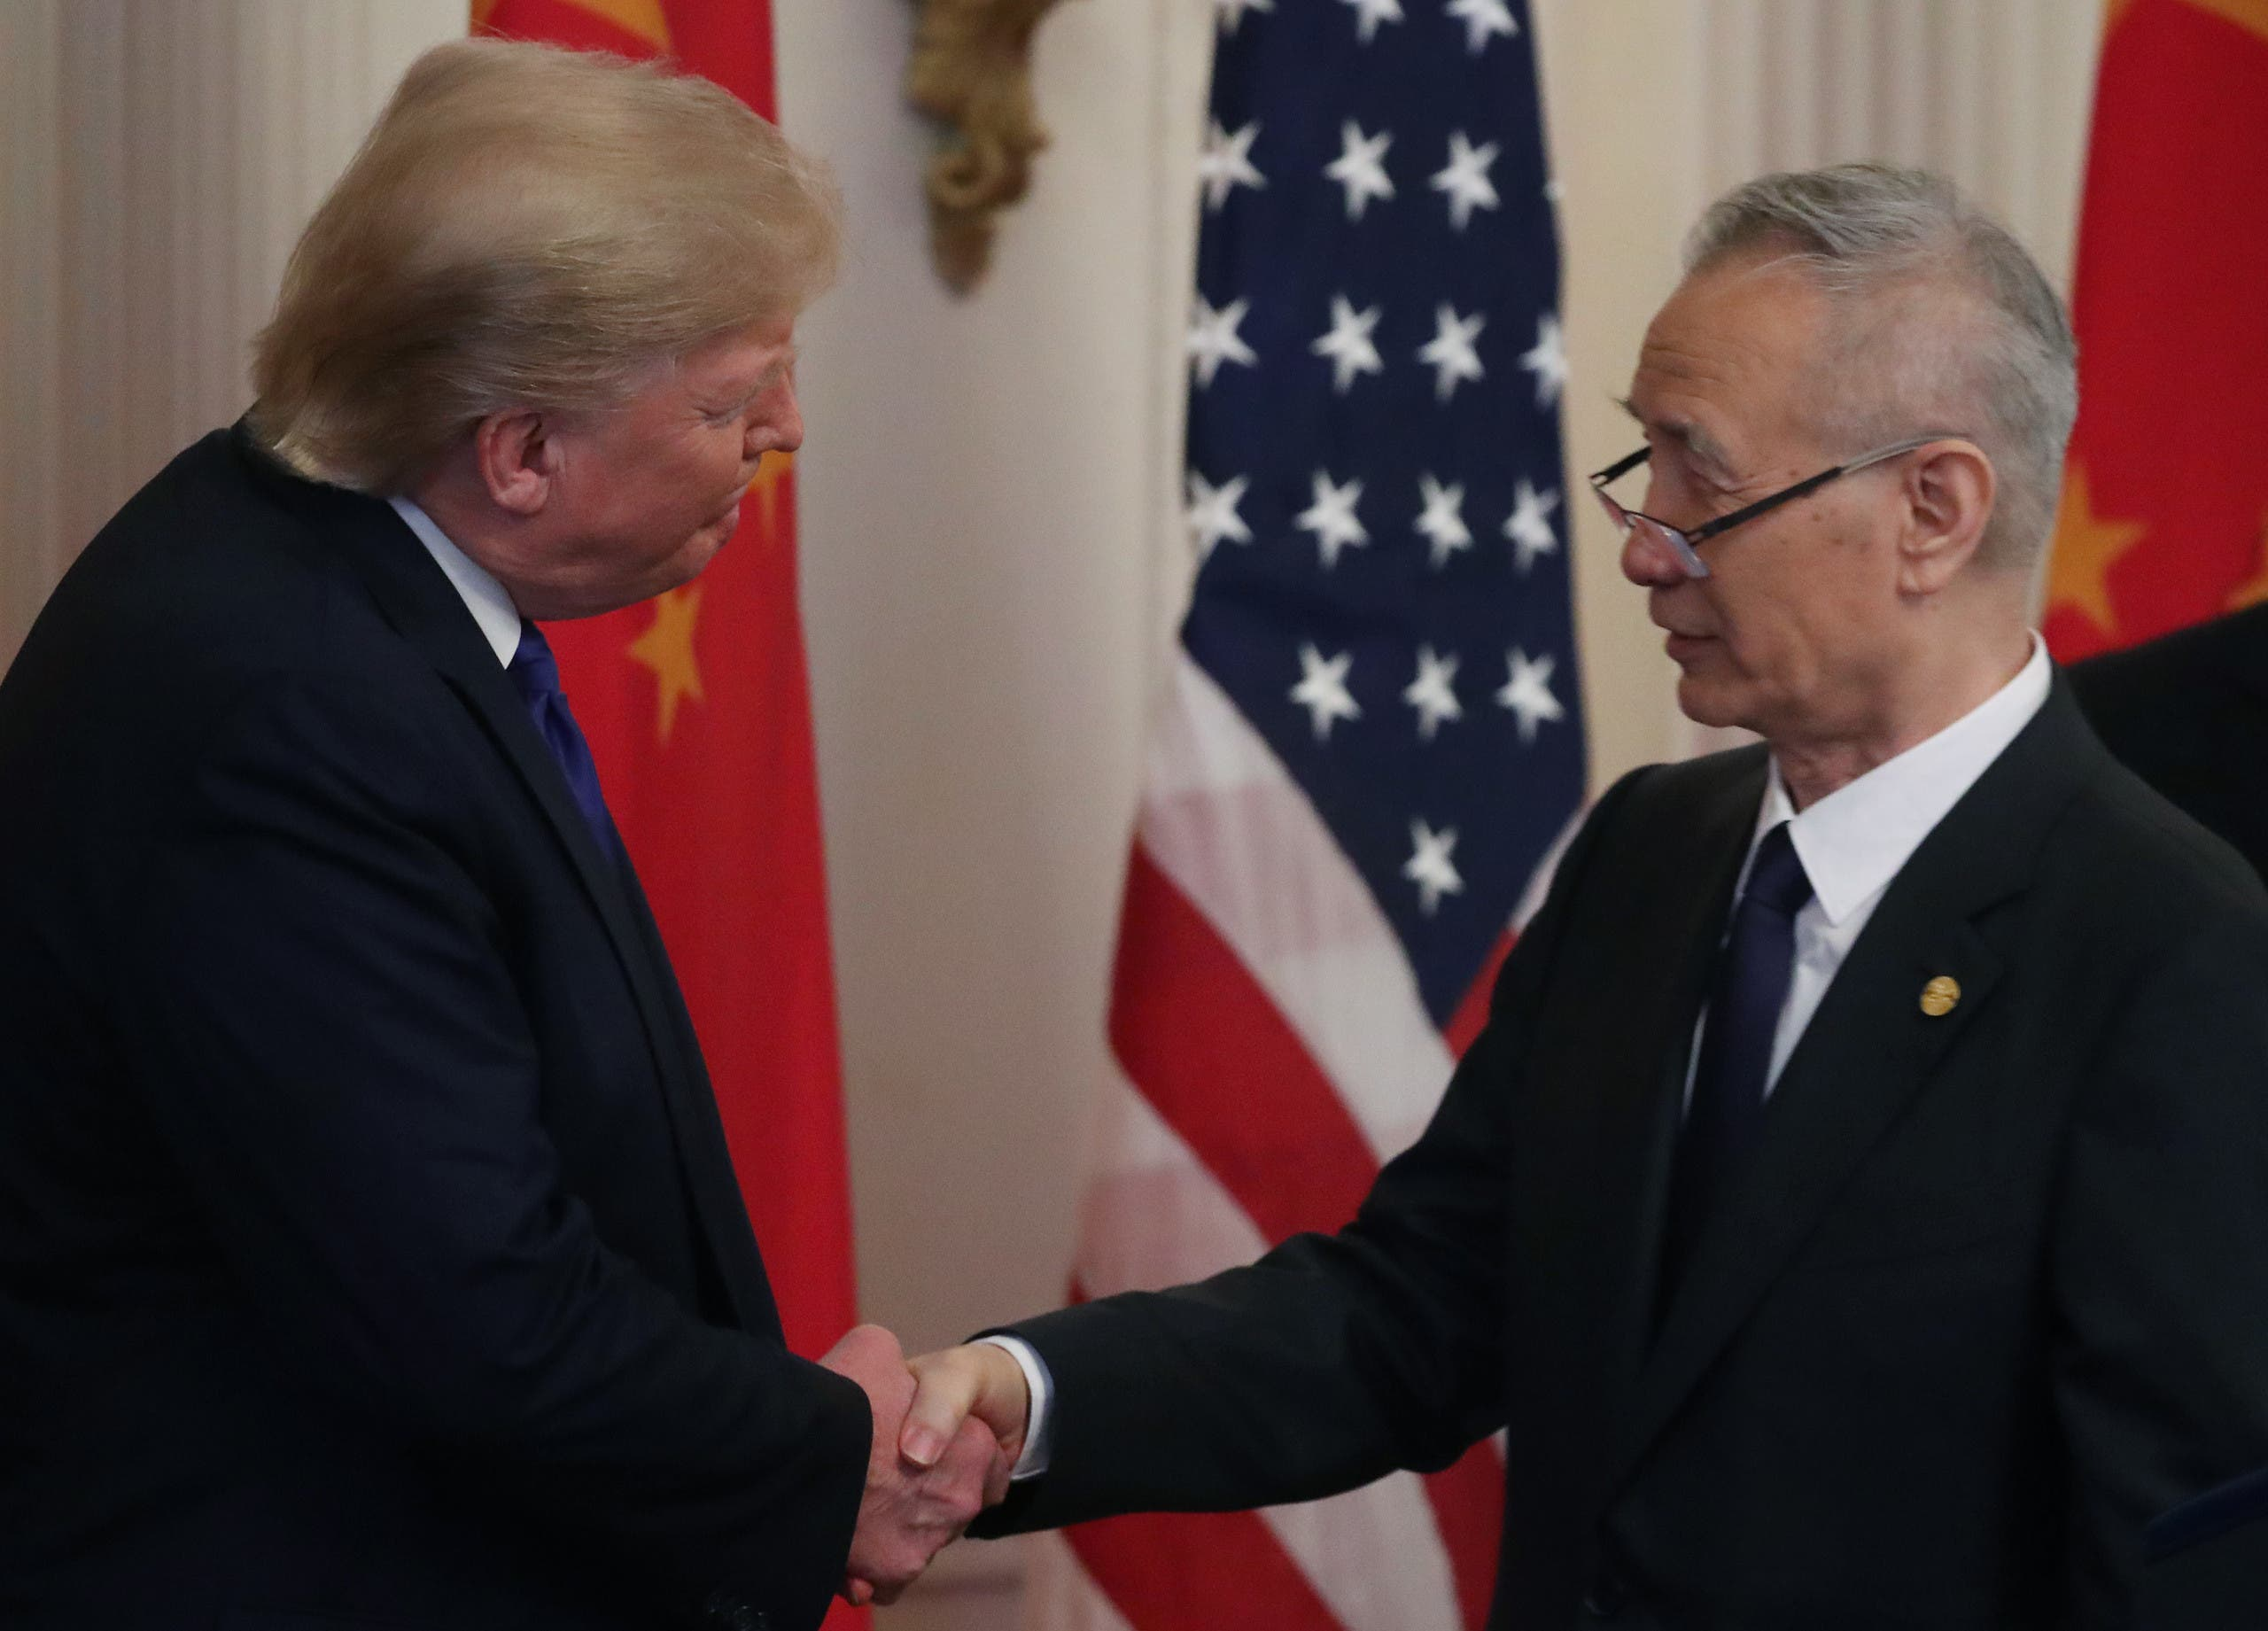 President Donald Trump shakes hands with Chinese Vice Premier Liu He, before signing the phase 1 of a trade deal, at the White House, on January 15, 2020 in Washington, DC. (AFP)